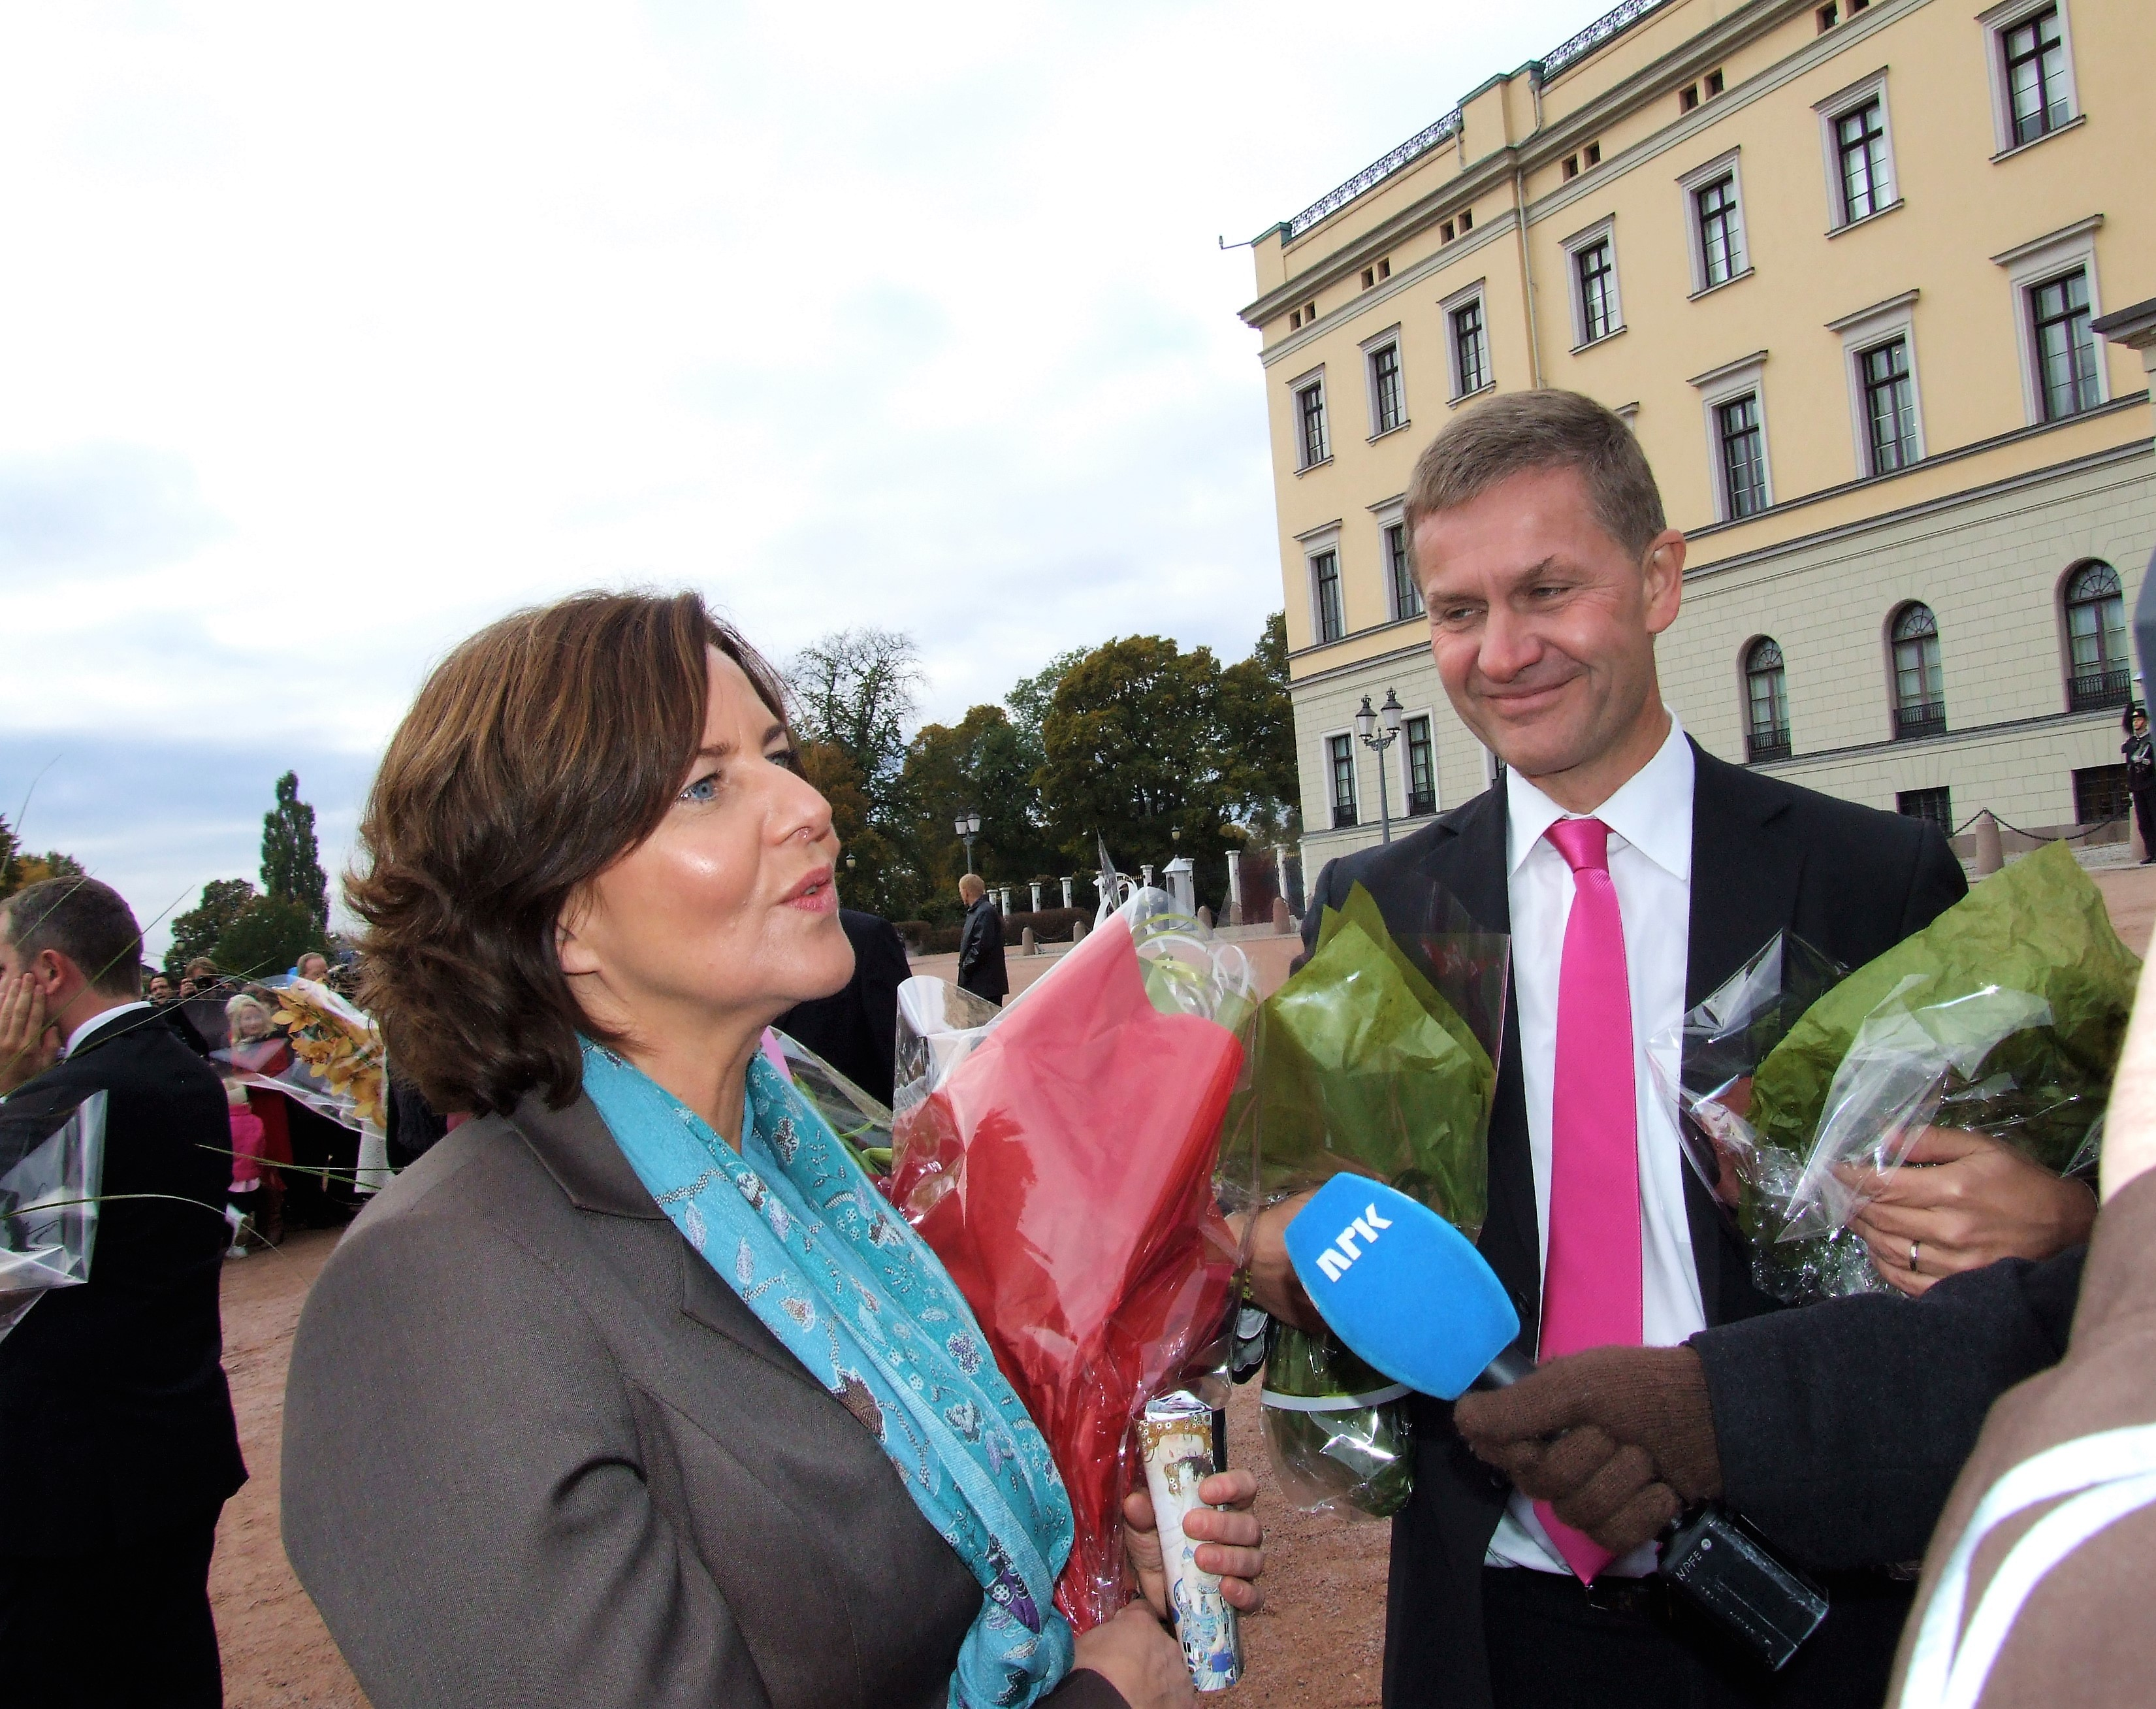 Hanne Bjurstrøm: Norway's new Minister of Labour with a vision